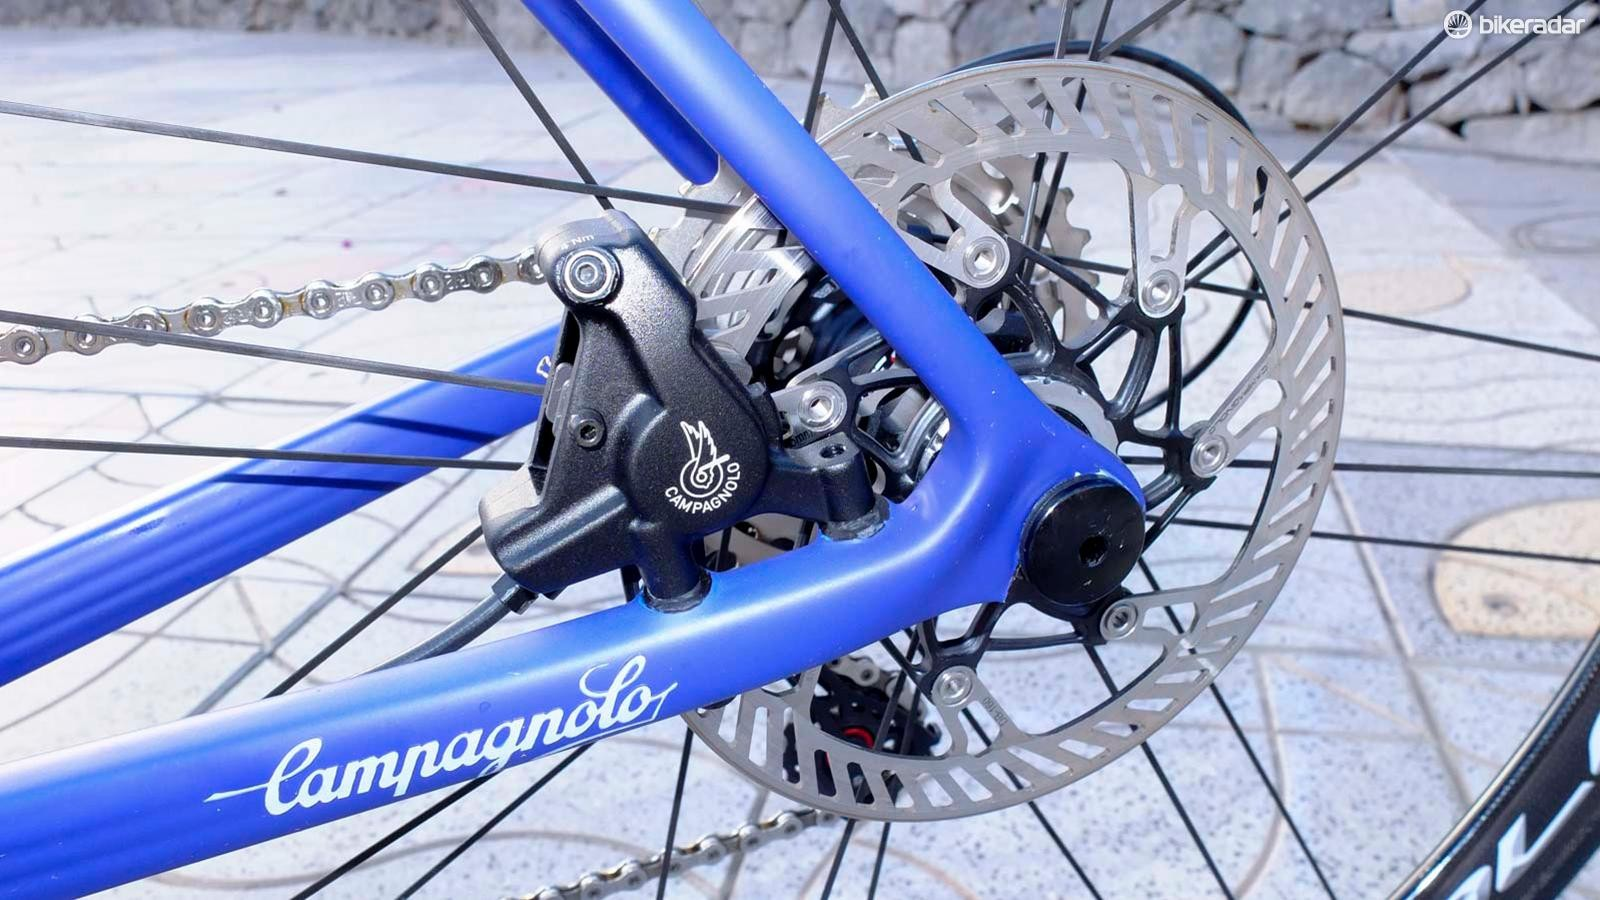 Campagnolo's disc brakes carry on from 2017's launch, with their rounded disc rotor edges